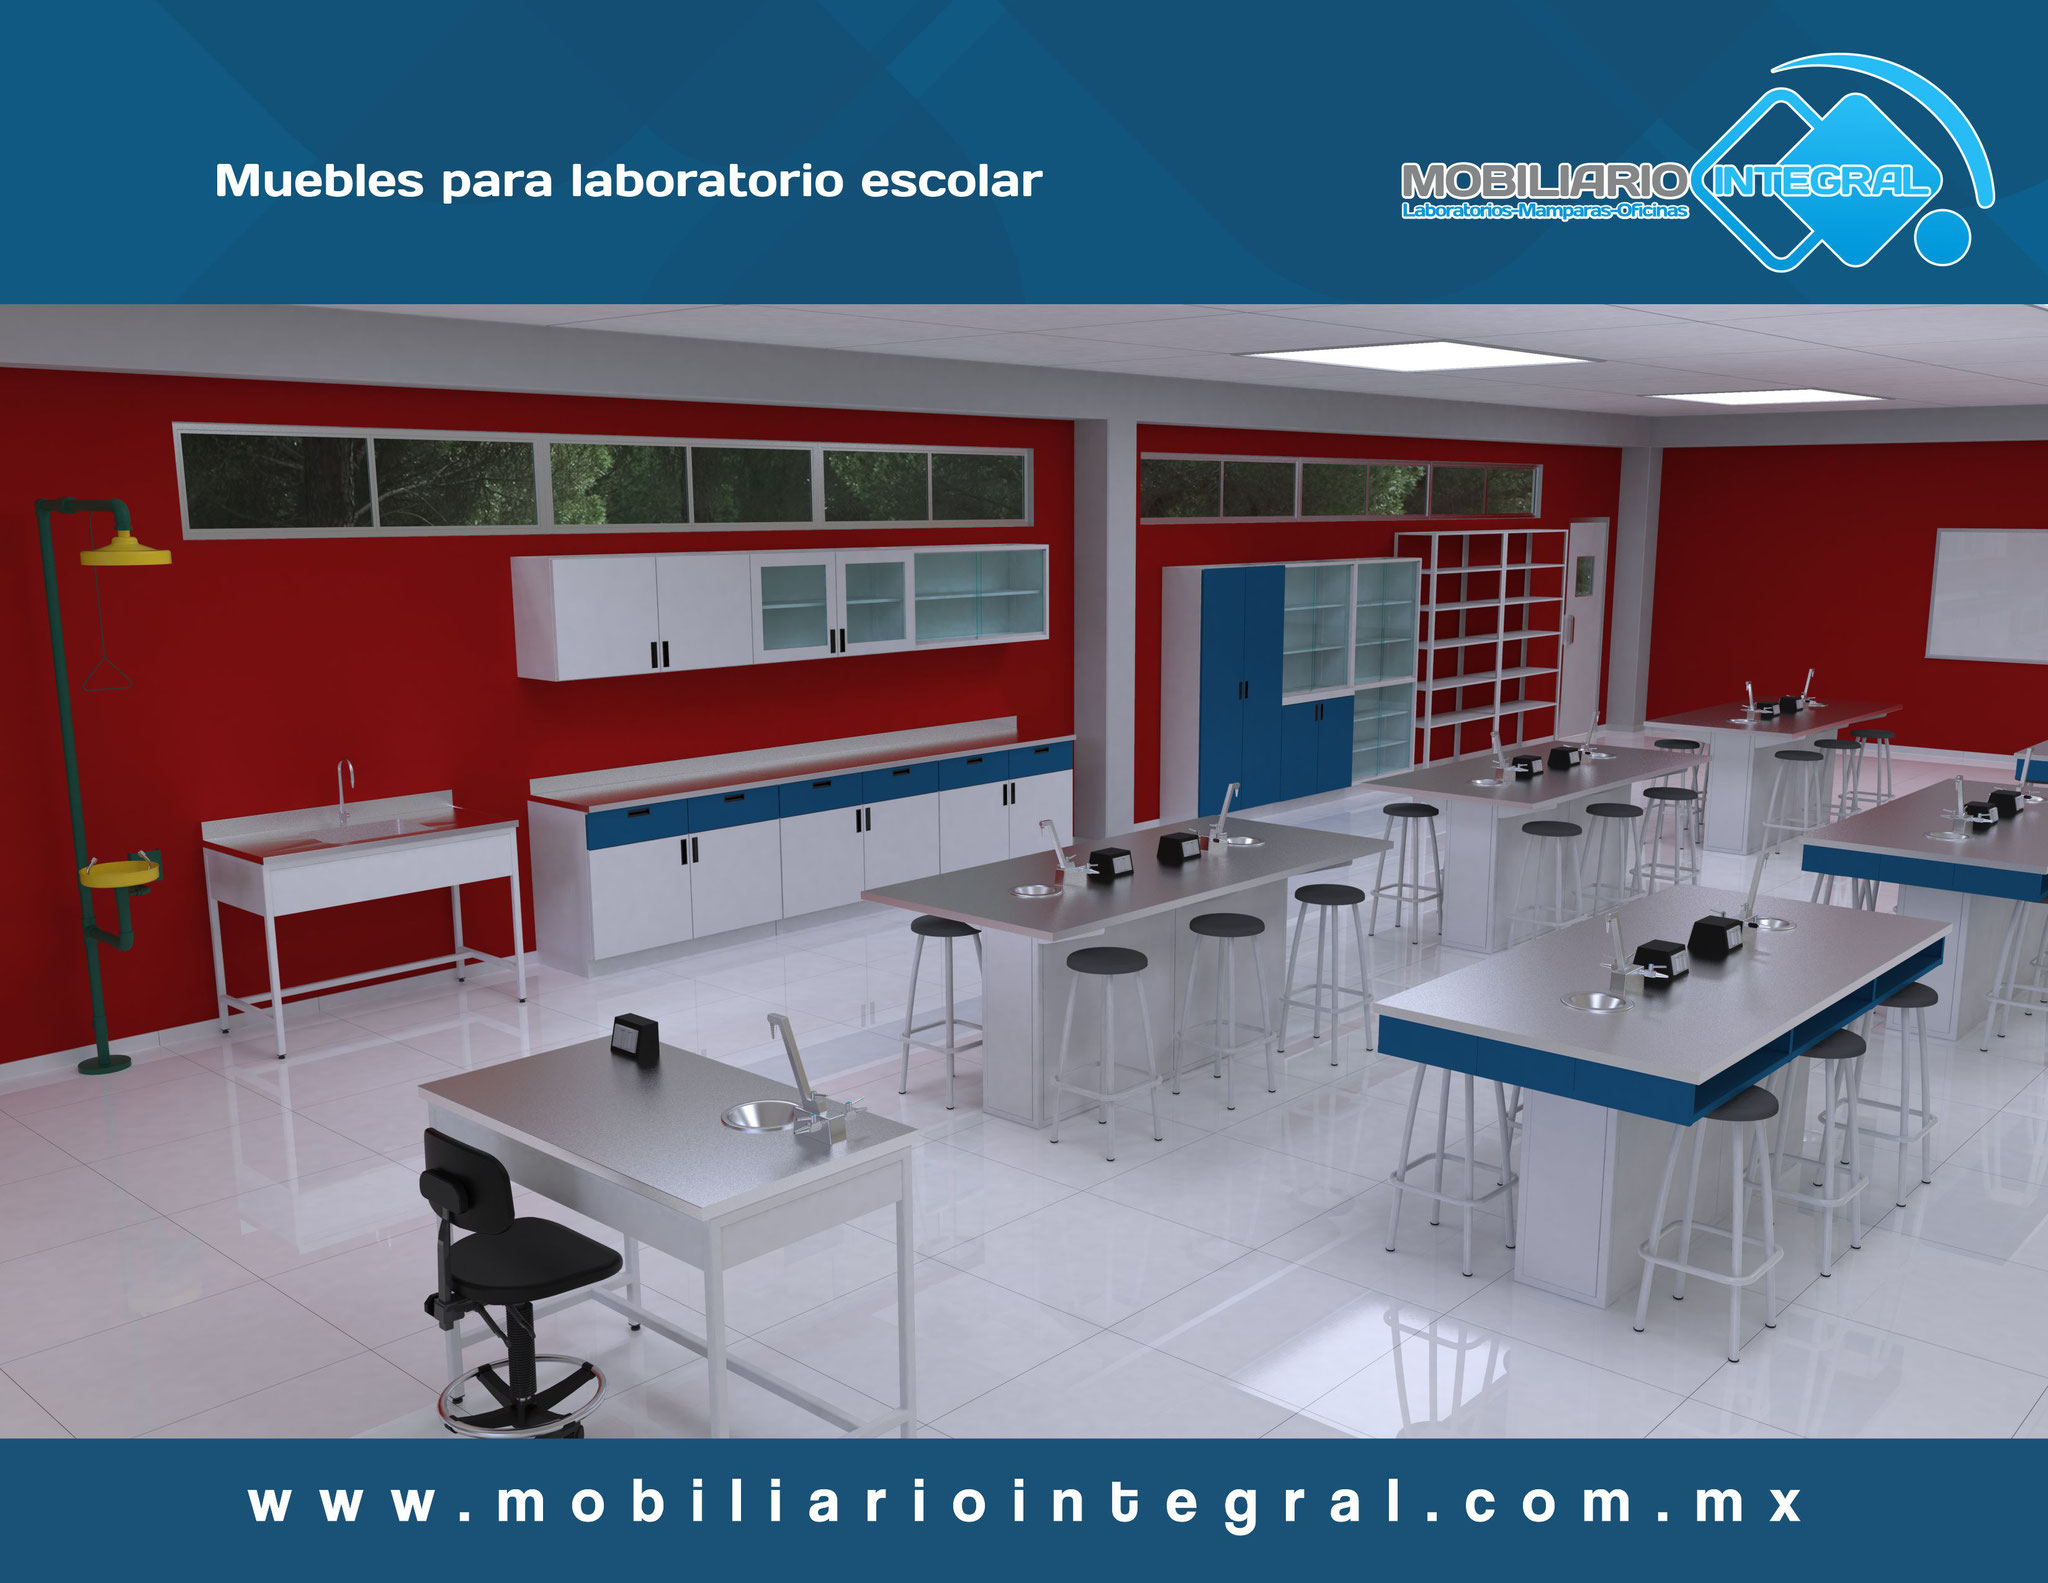 Muebles para laboratorio escolar Nayarit